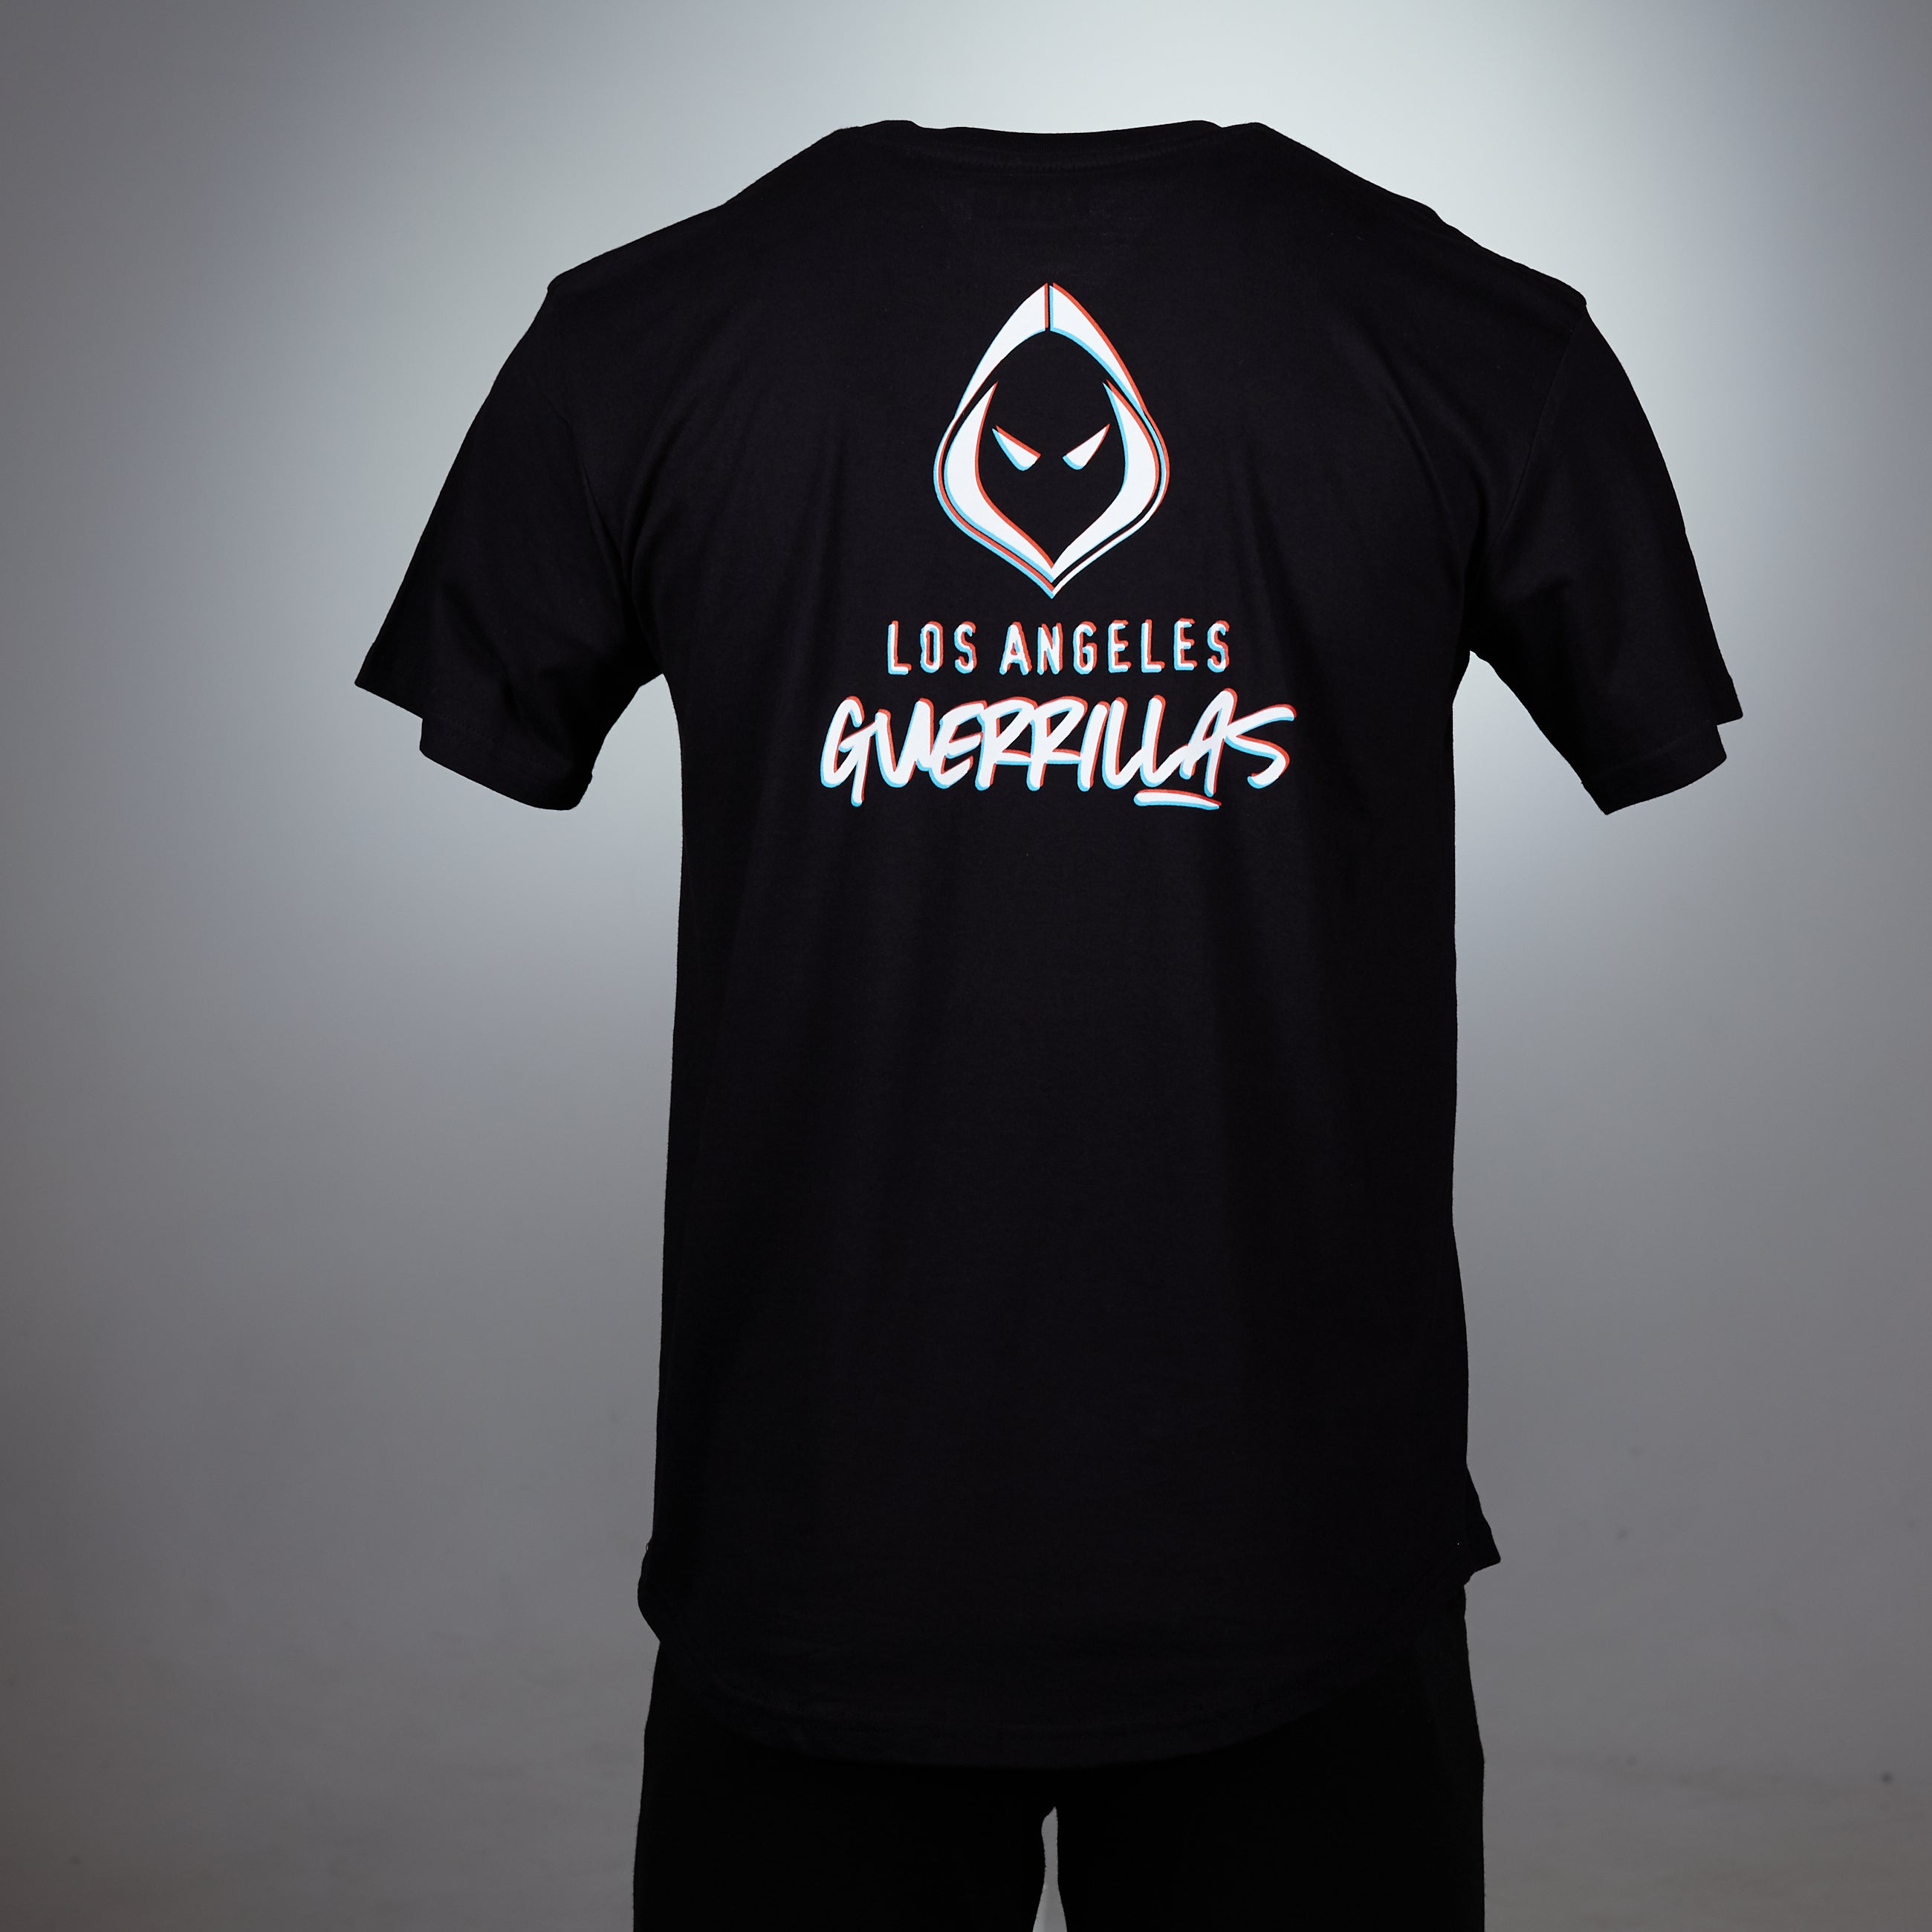 Los Angeles Guerrillas Tilt Shift S/S Tee